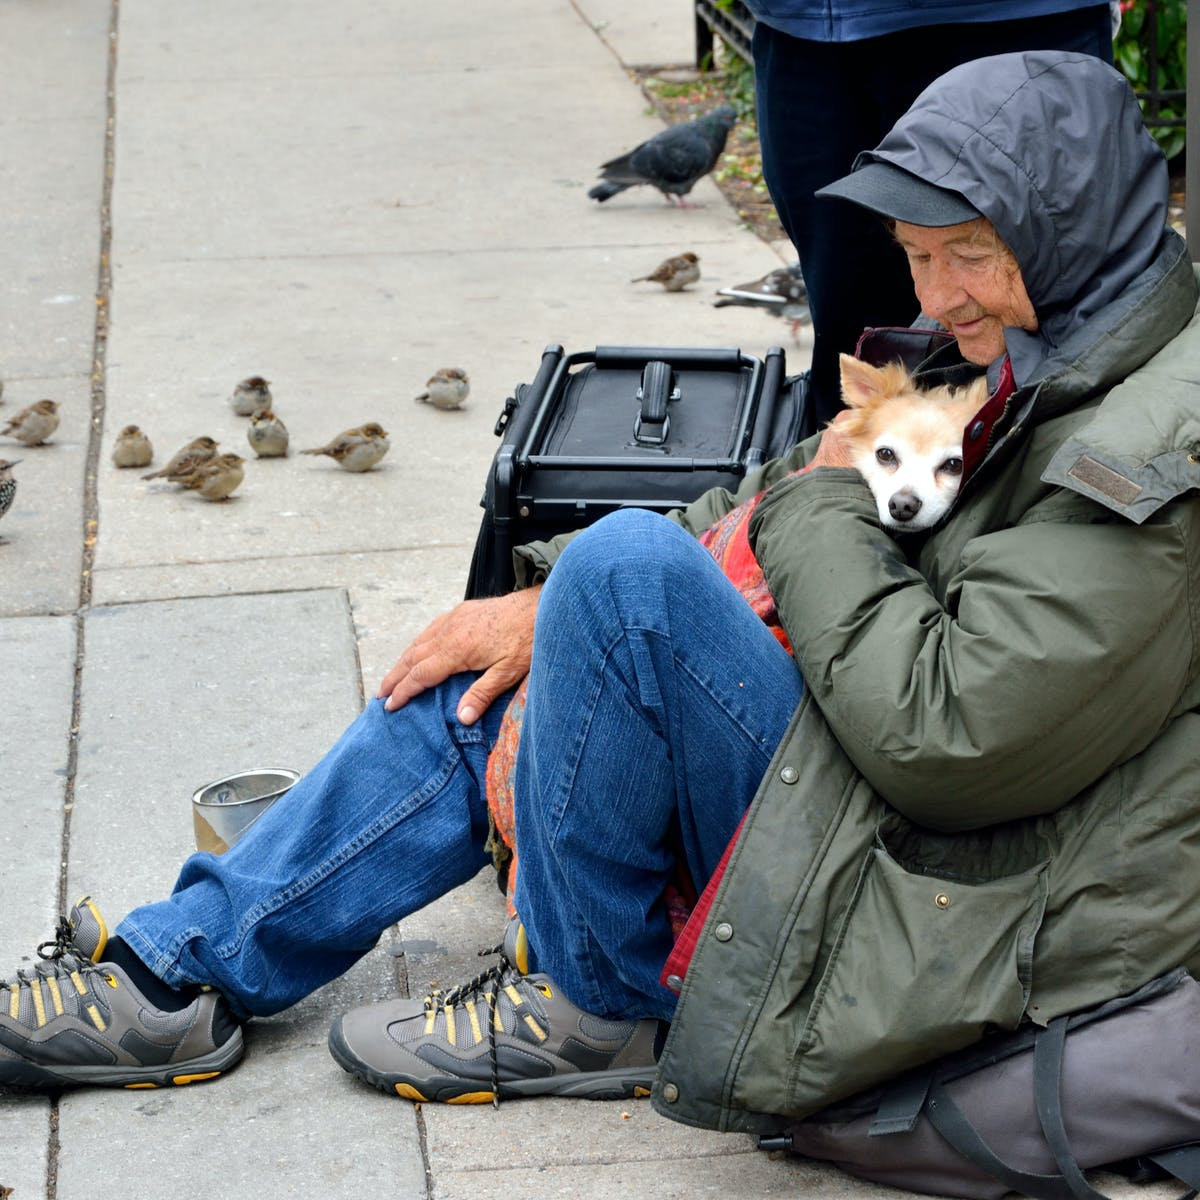 My Dog Is My Home The Need For Pet Friendly Accommodation For Homeless People